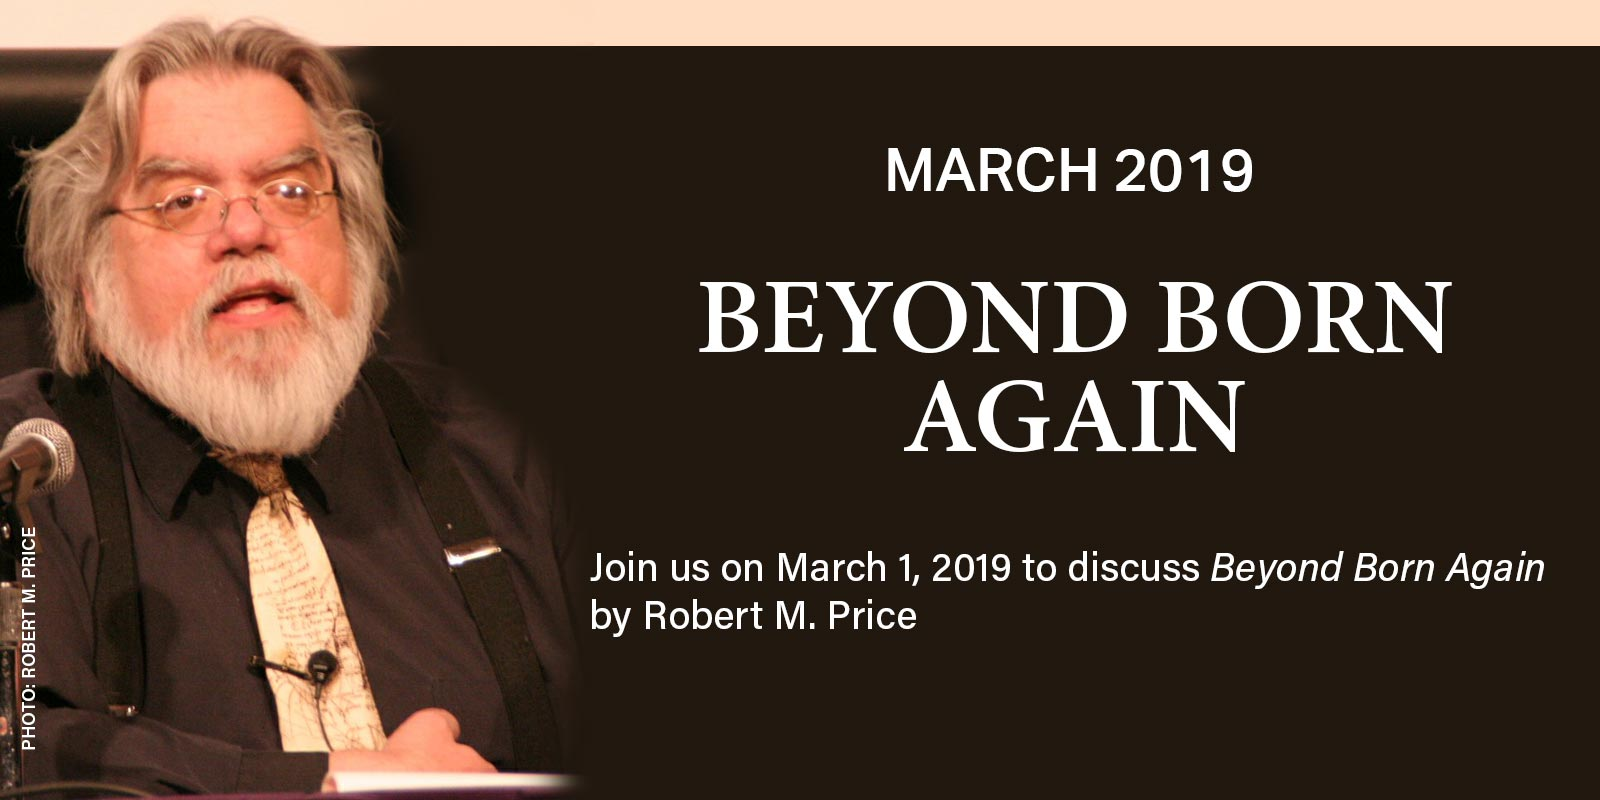 Join us on 3/1/19 to discuss Beyond Born Again